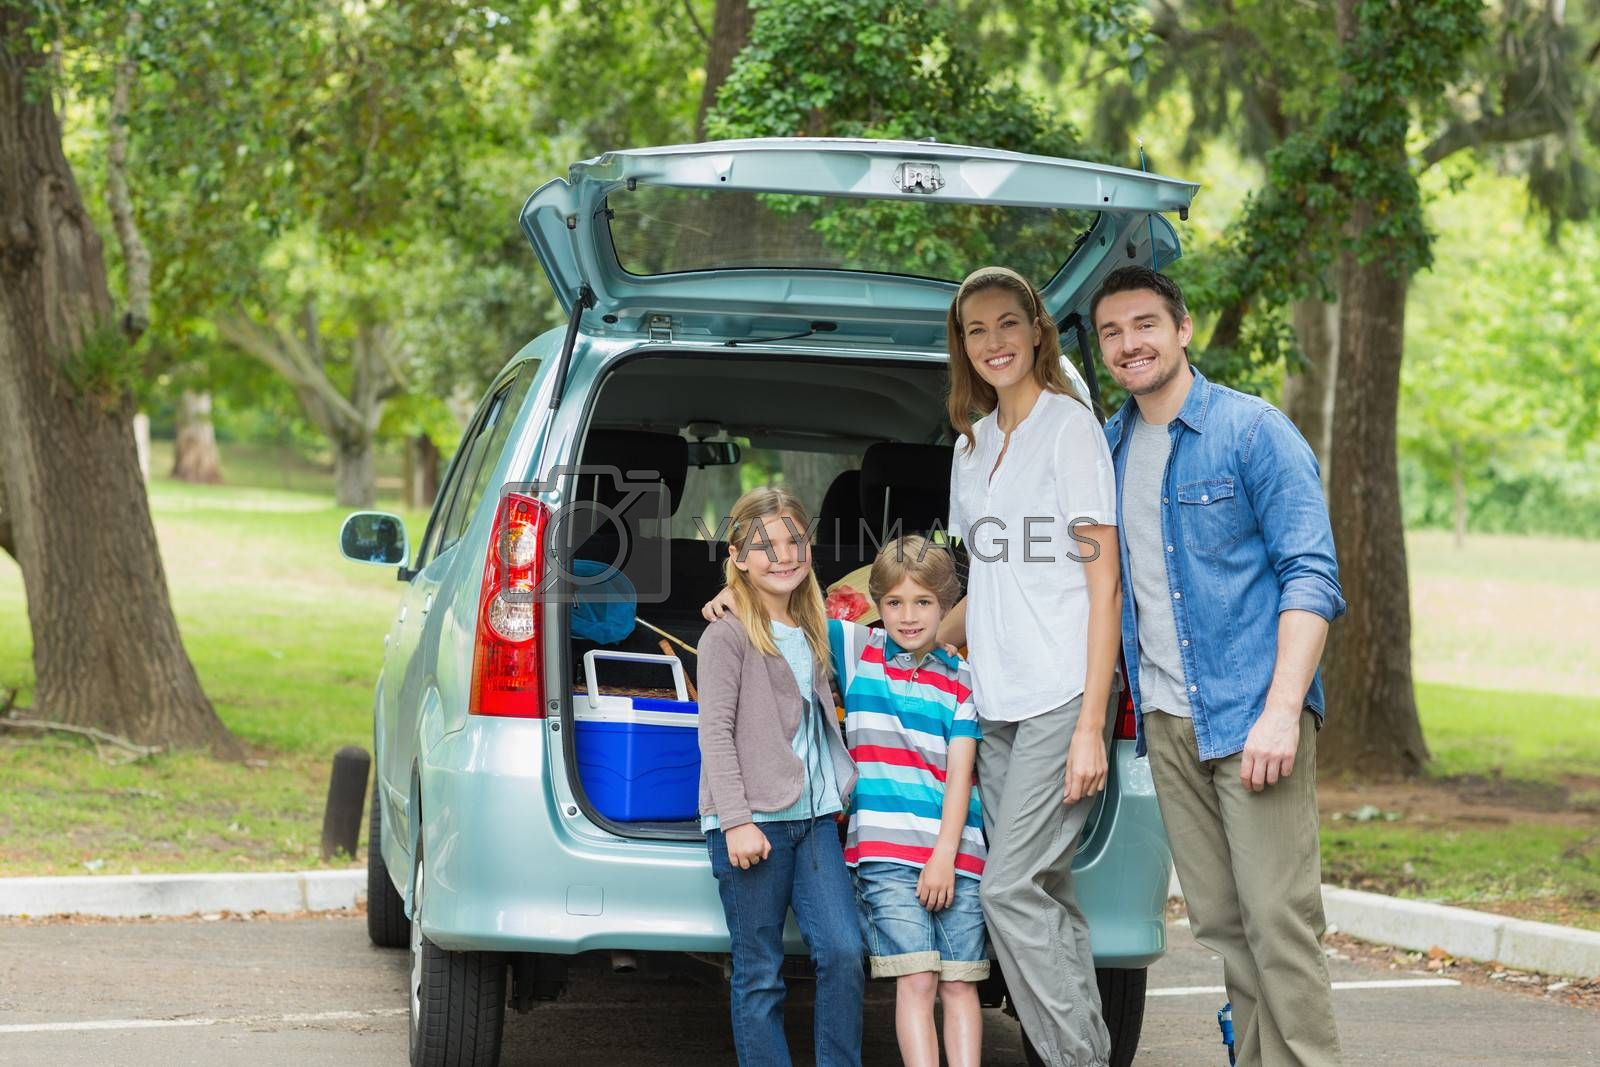 Family of four by car trunk while on picnic by Wavebreakmedia